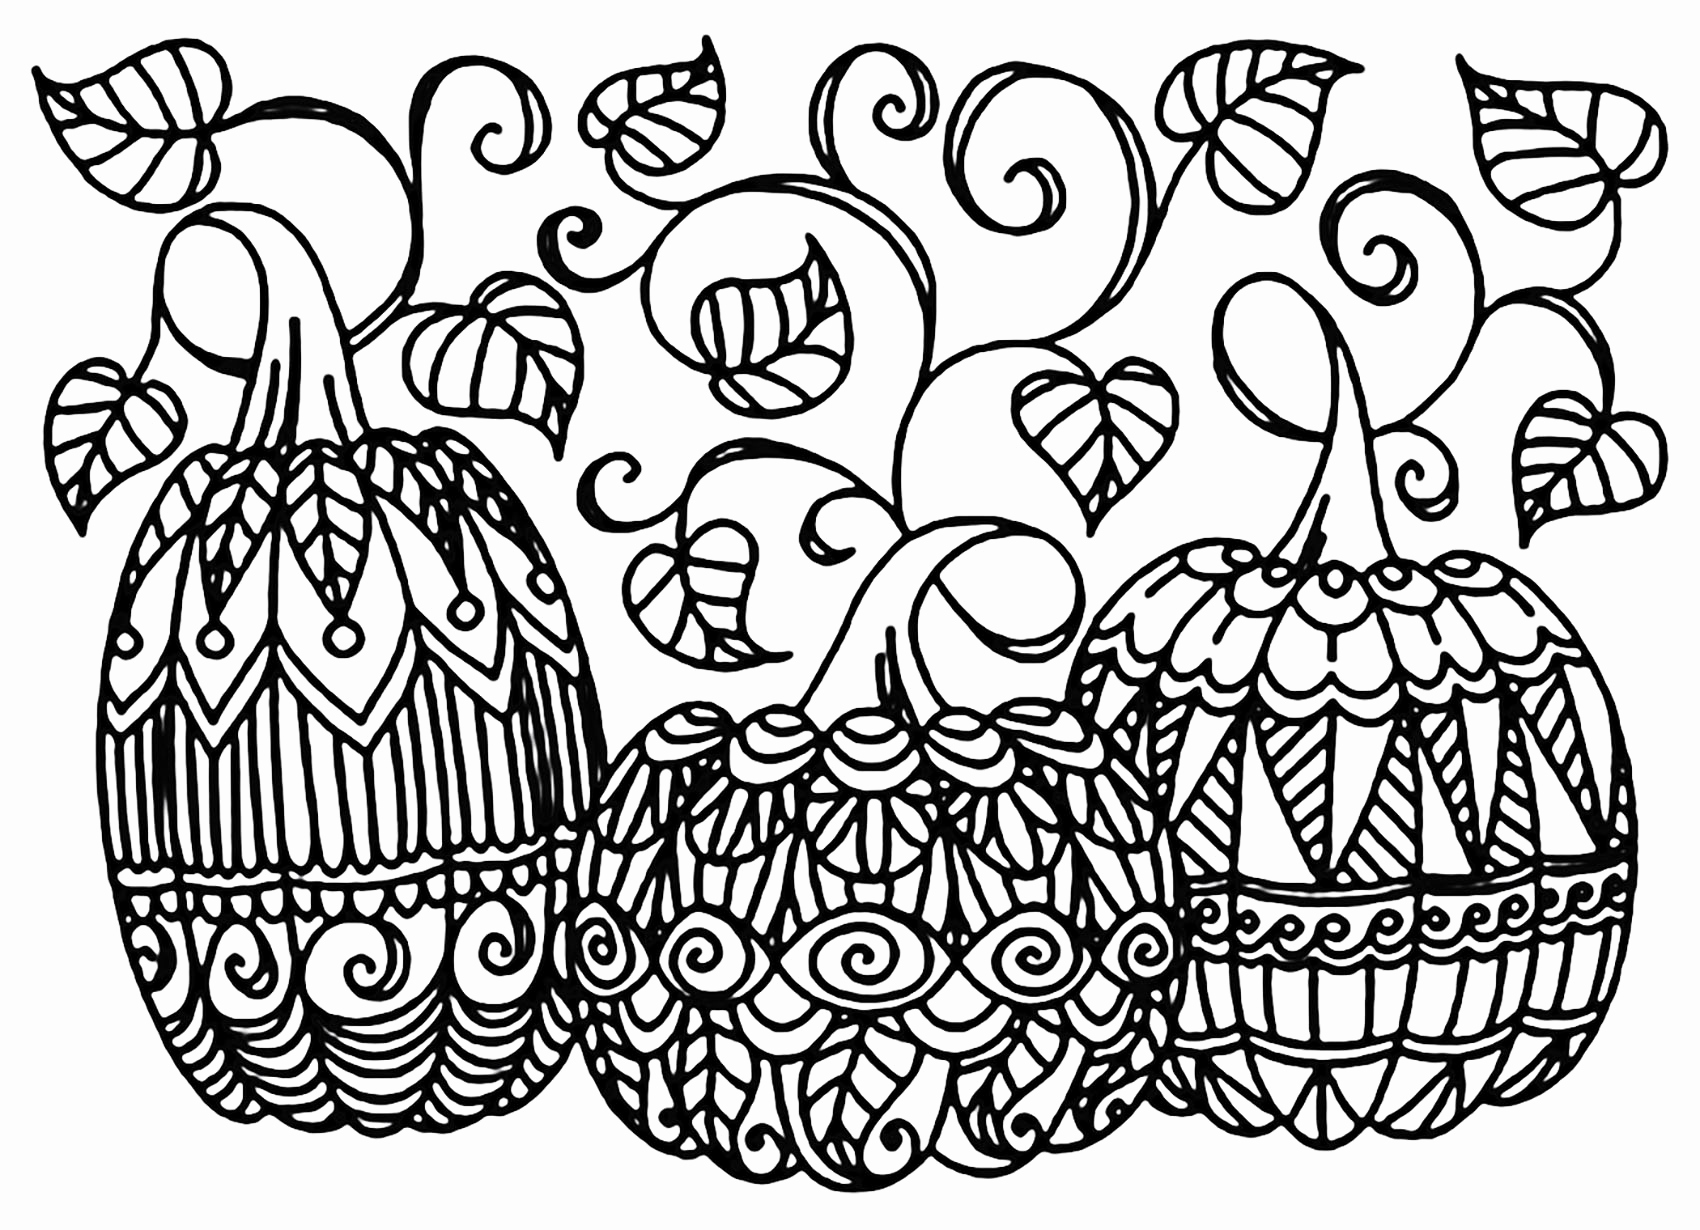 1700x1230 Halloween Coloring Pages Printable Lovely Original And Fun